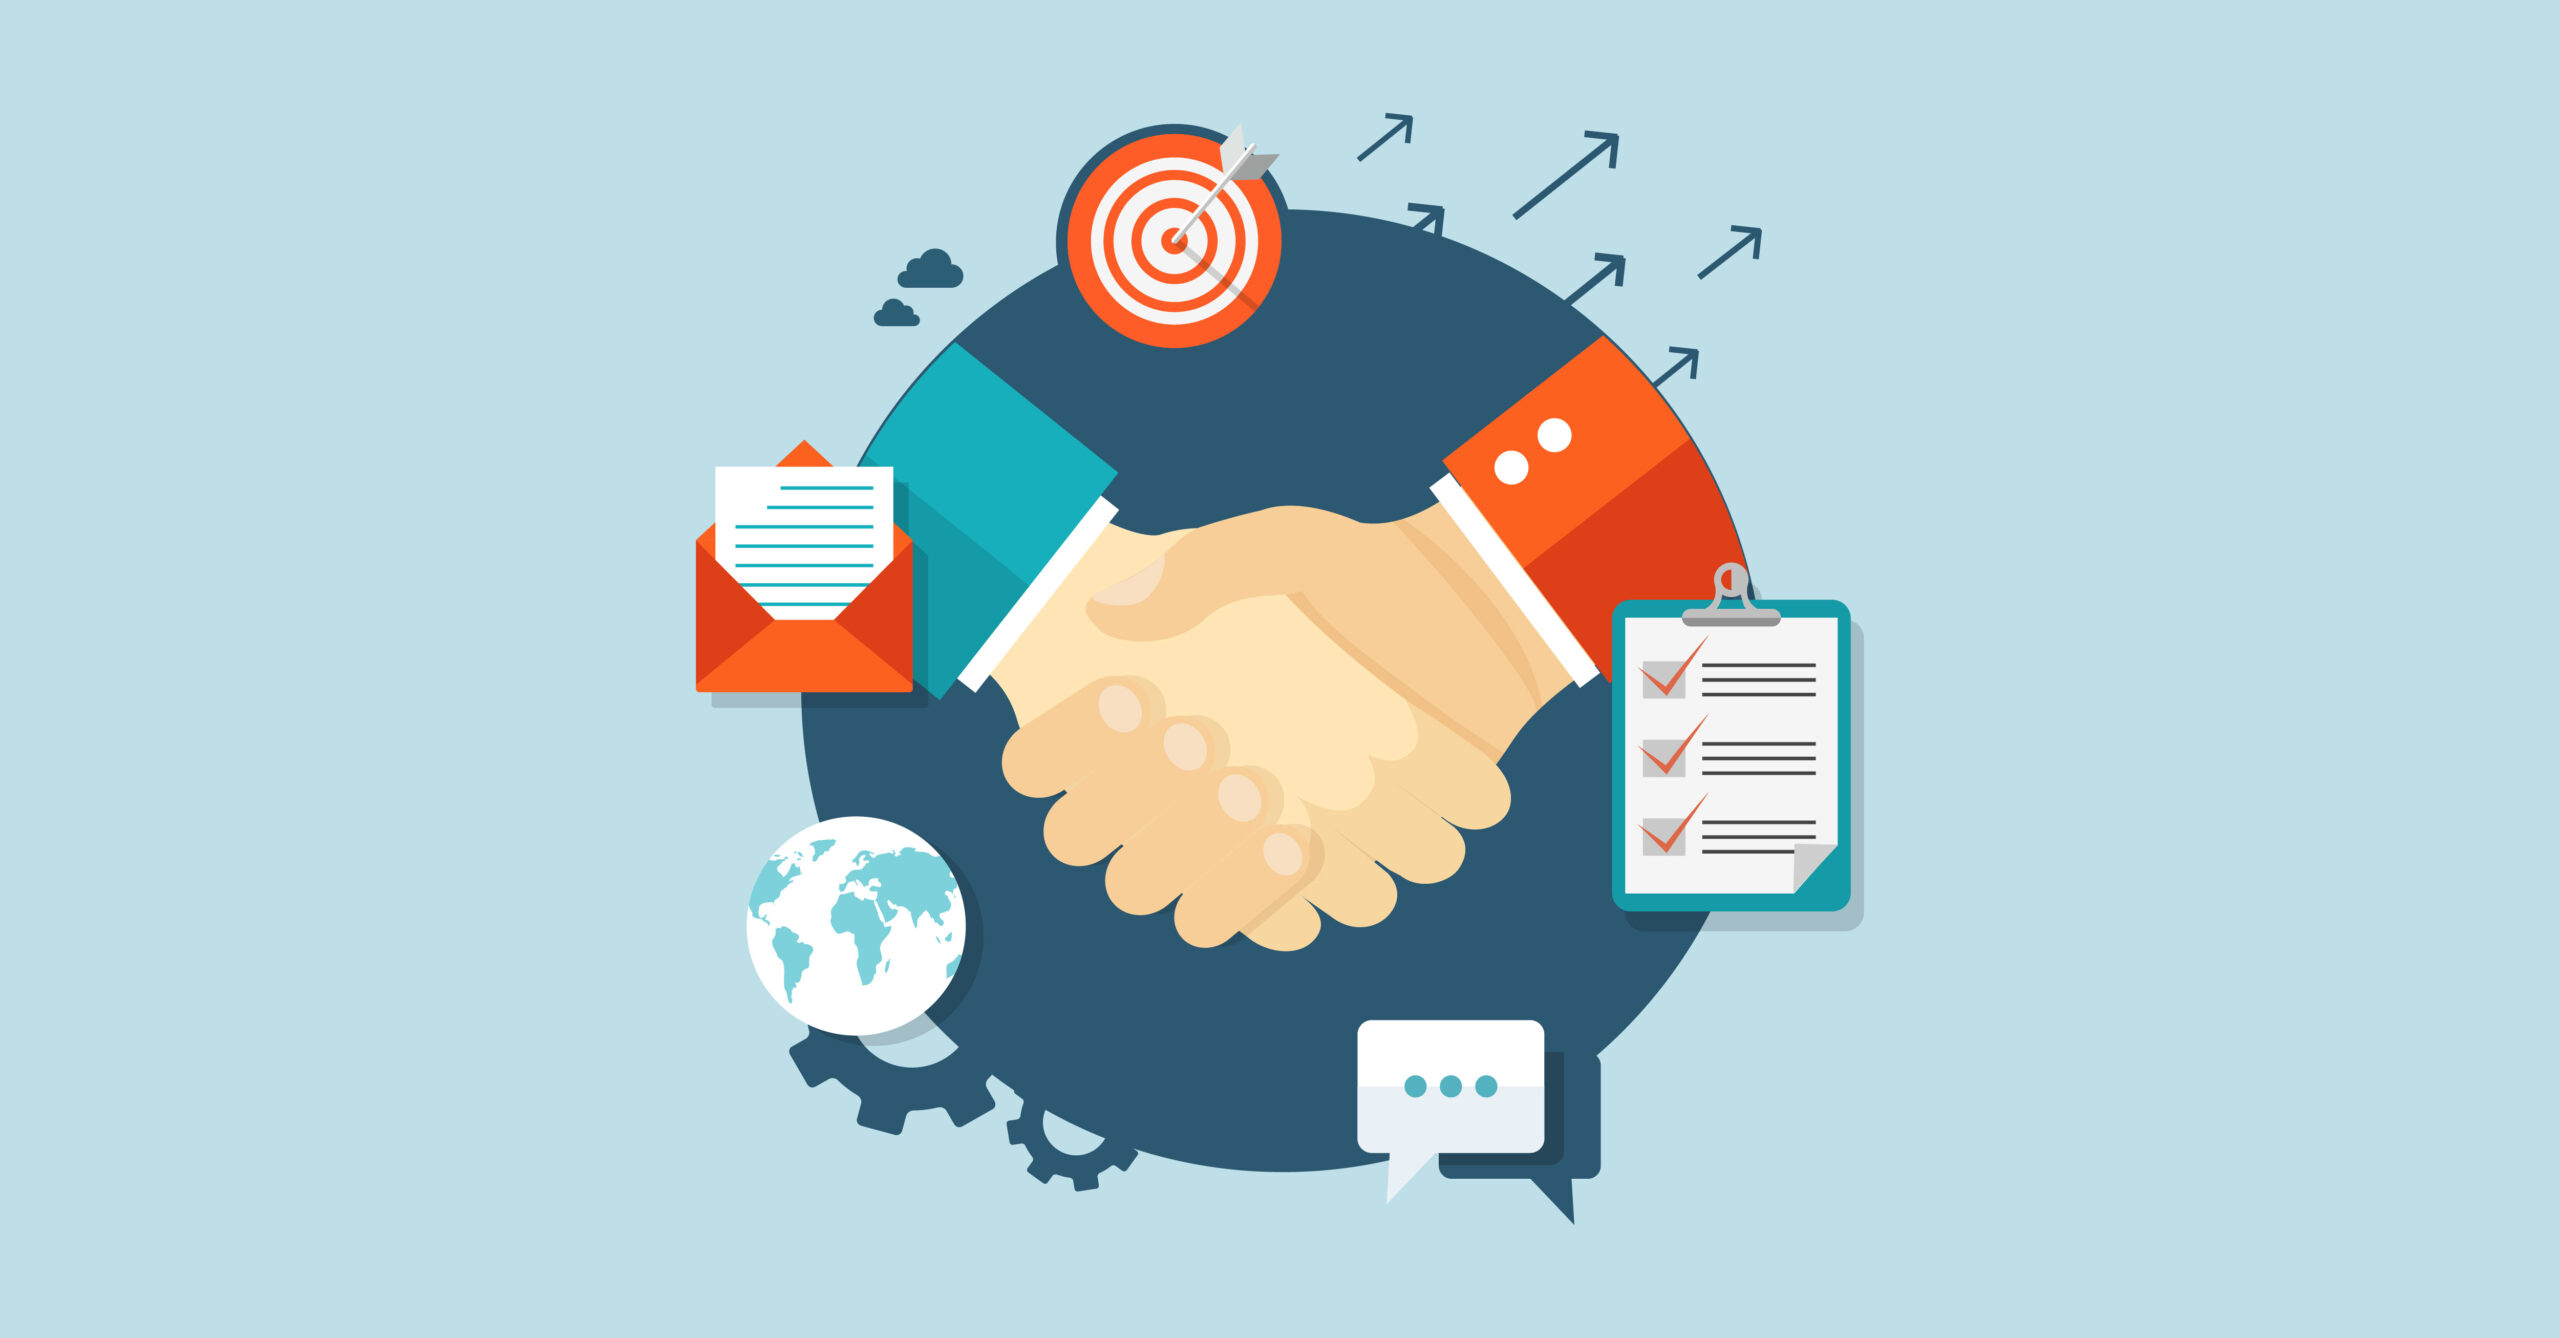 How To Make A New Business Partnership Work